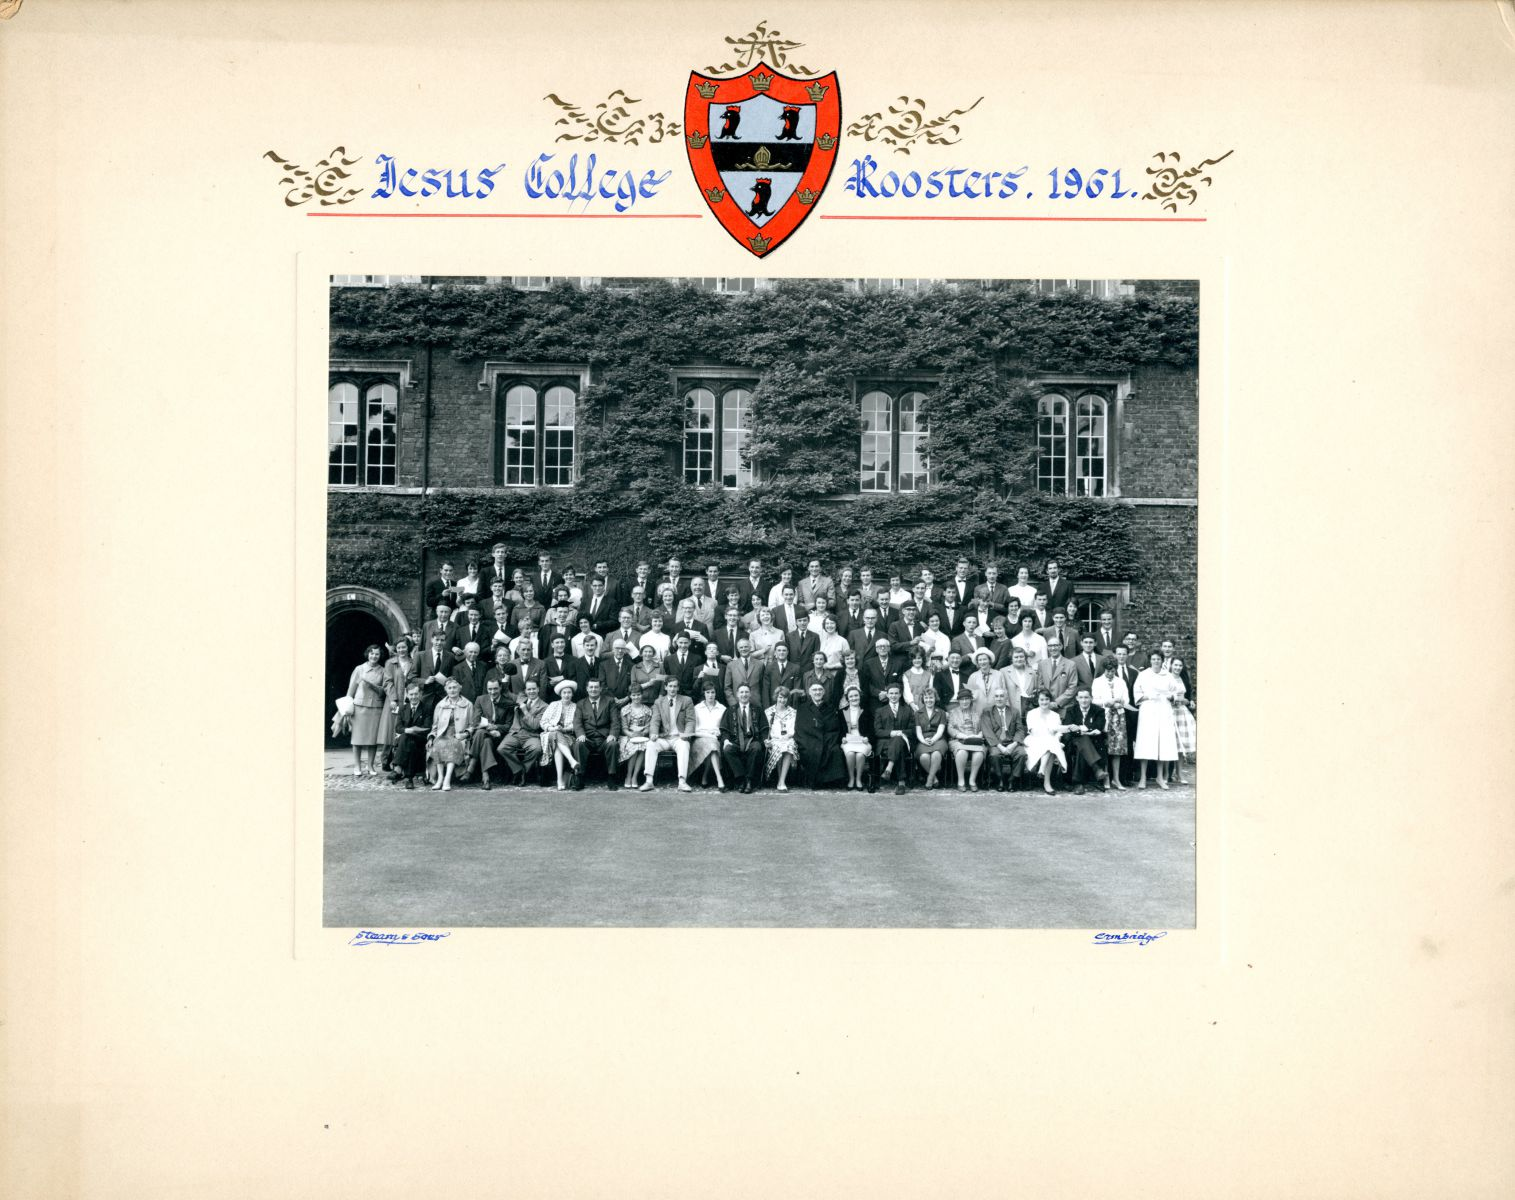 Jesus College Roosters 1961